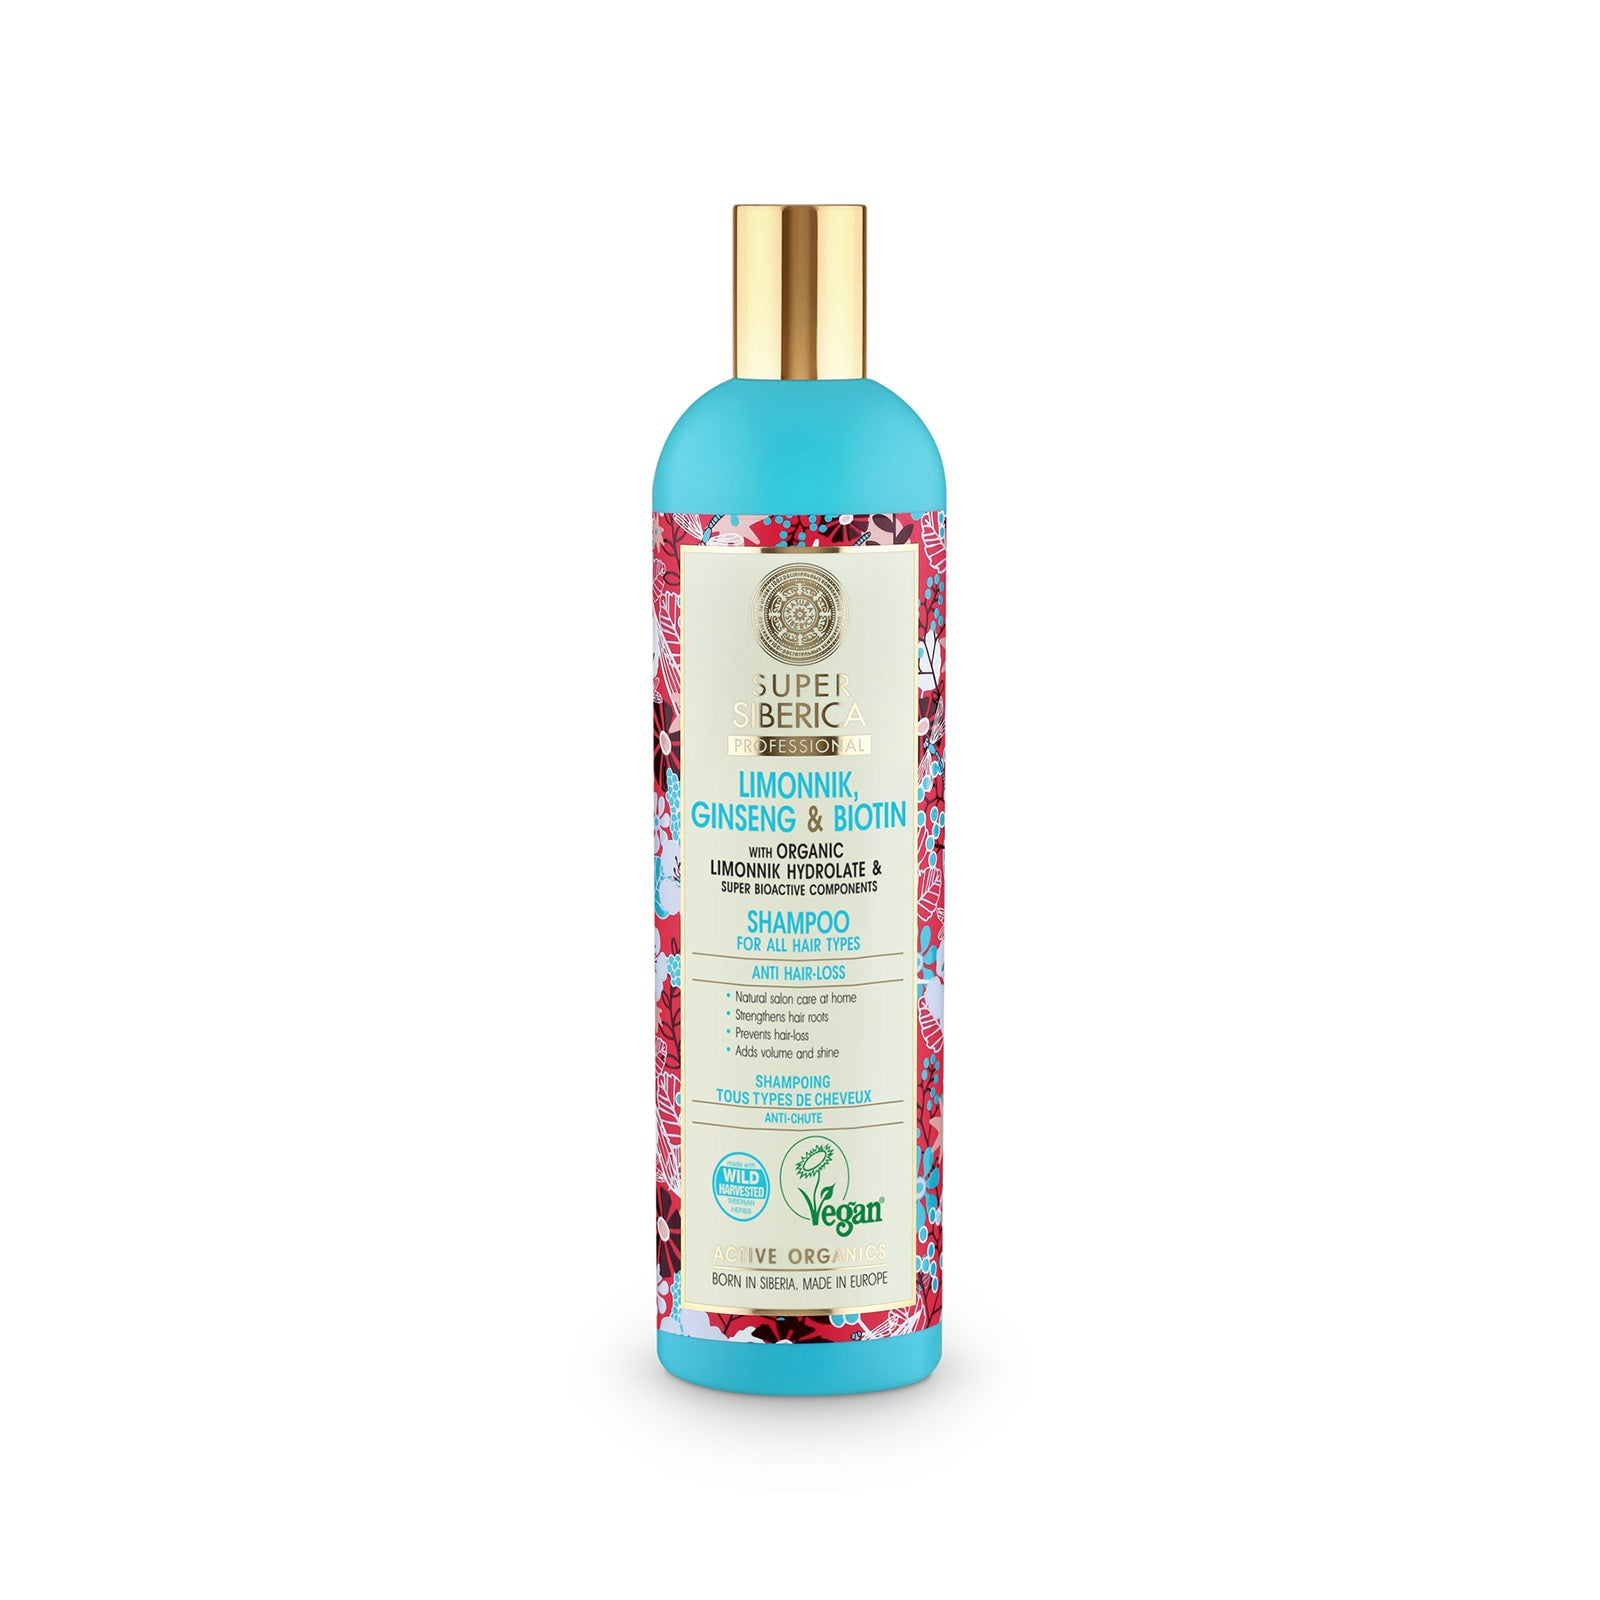 Super Siberica Limonnik, ginseng & biotin. Shampoo for All Hair Types, 400 ml